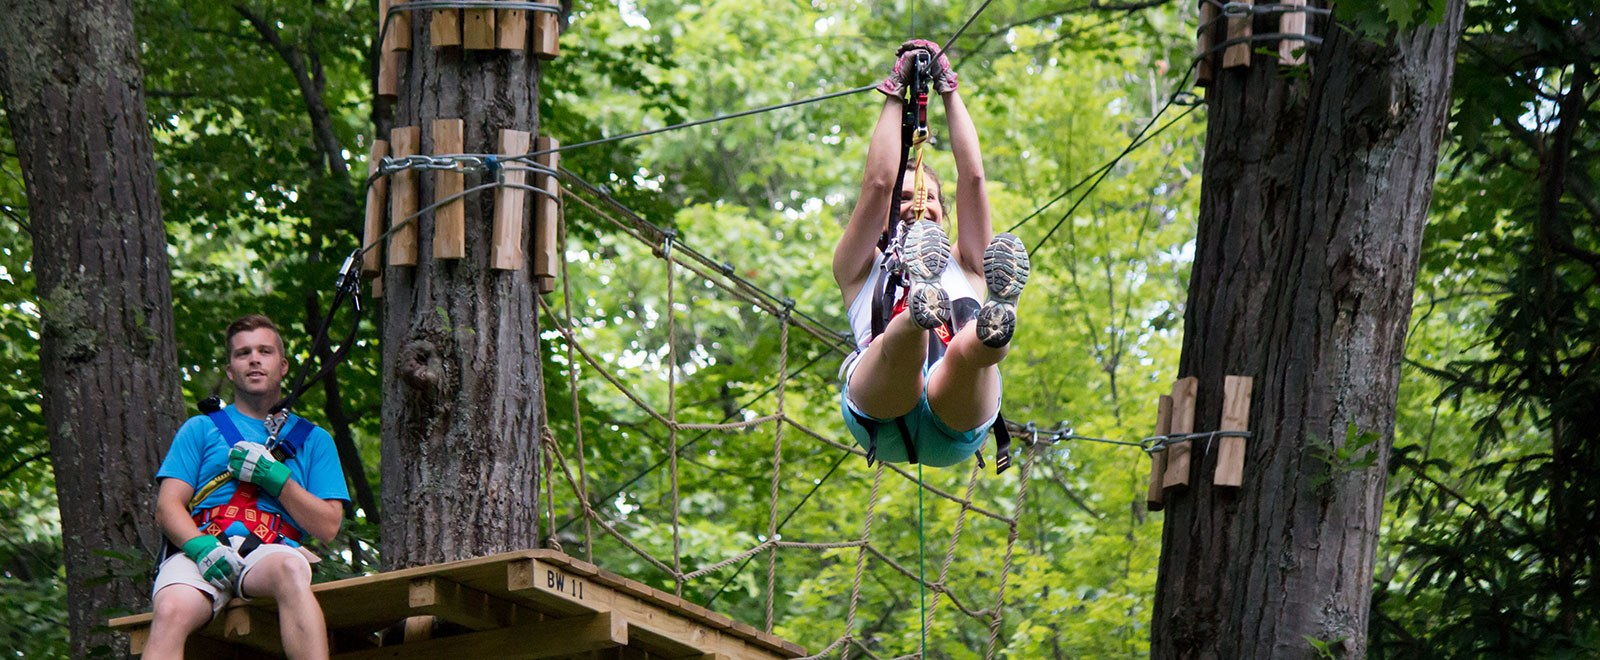 Dreaming of Fun in the Treetops?